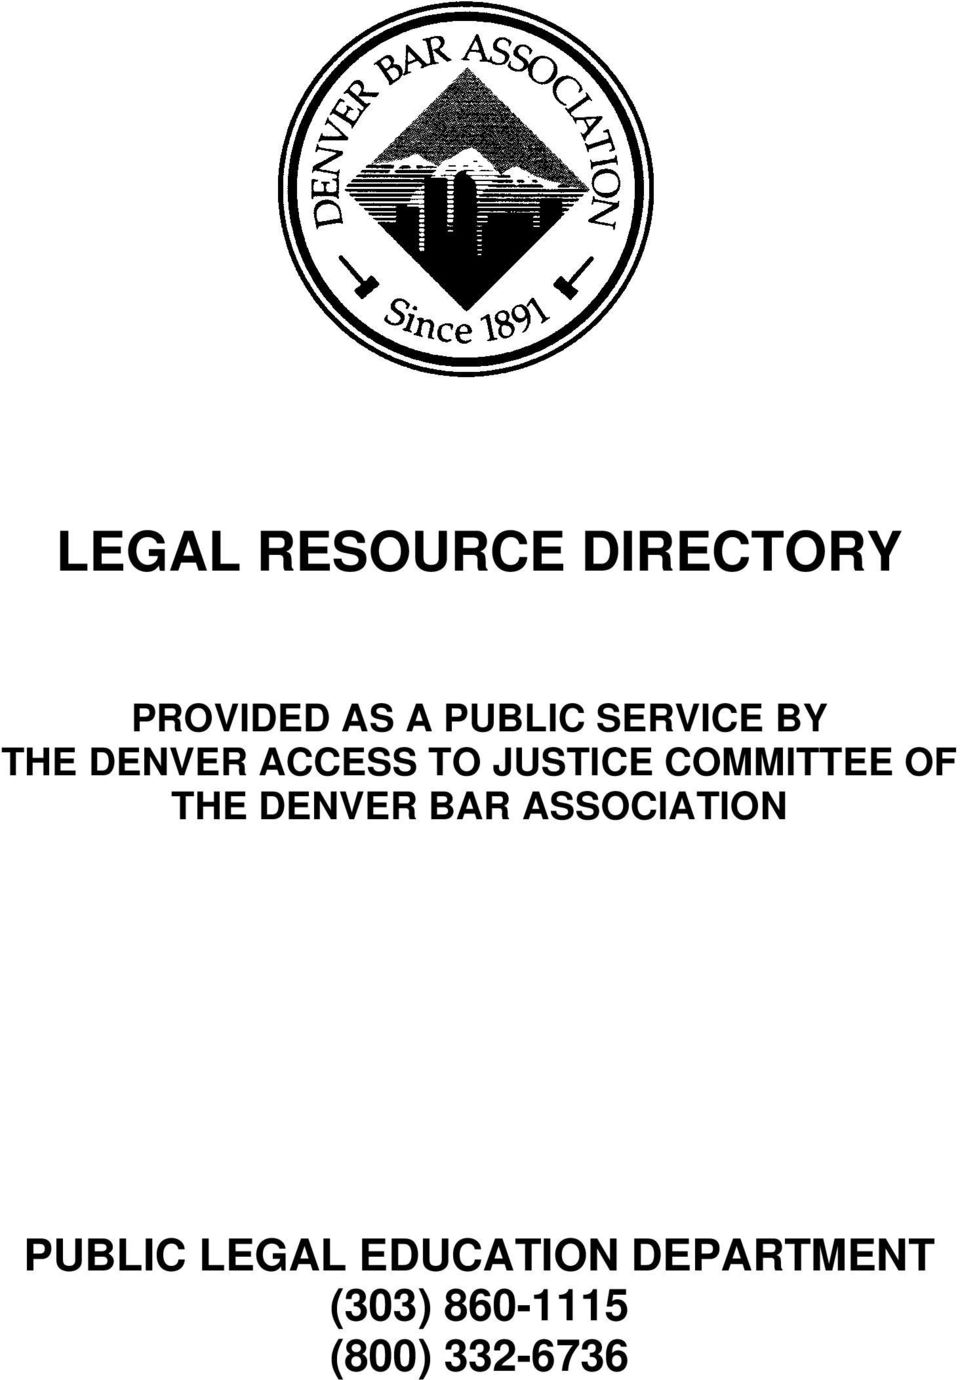 COMMITTEE OF THE DENVER BAR ASSOCIATION PUBLIC